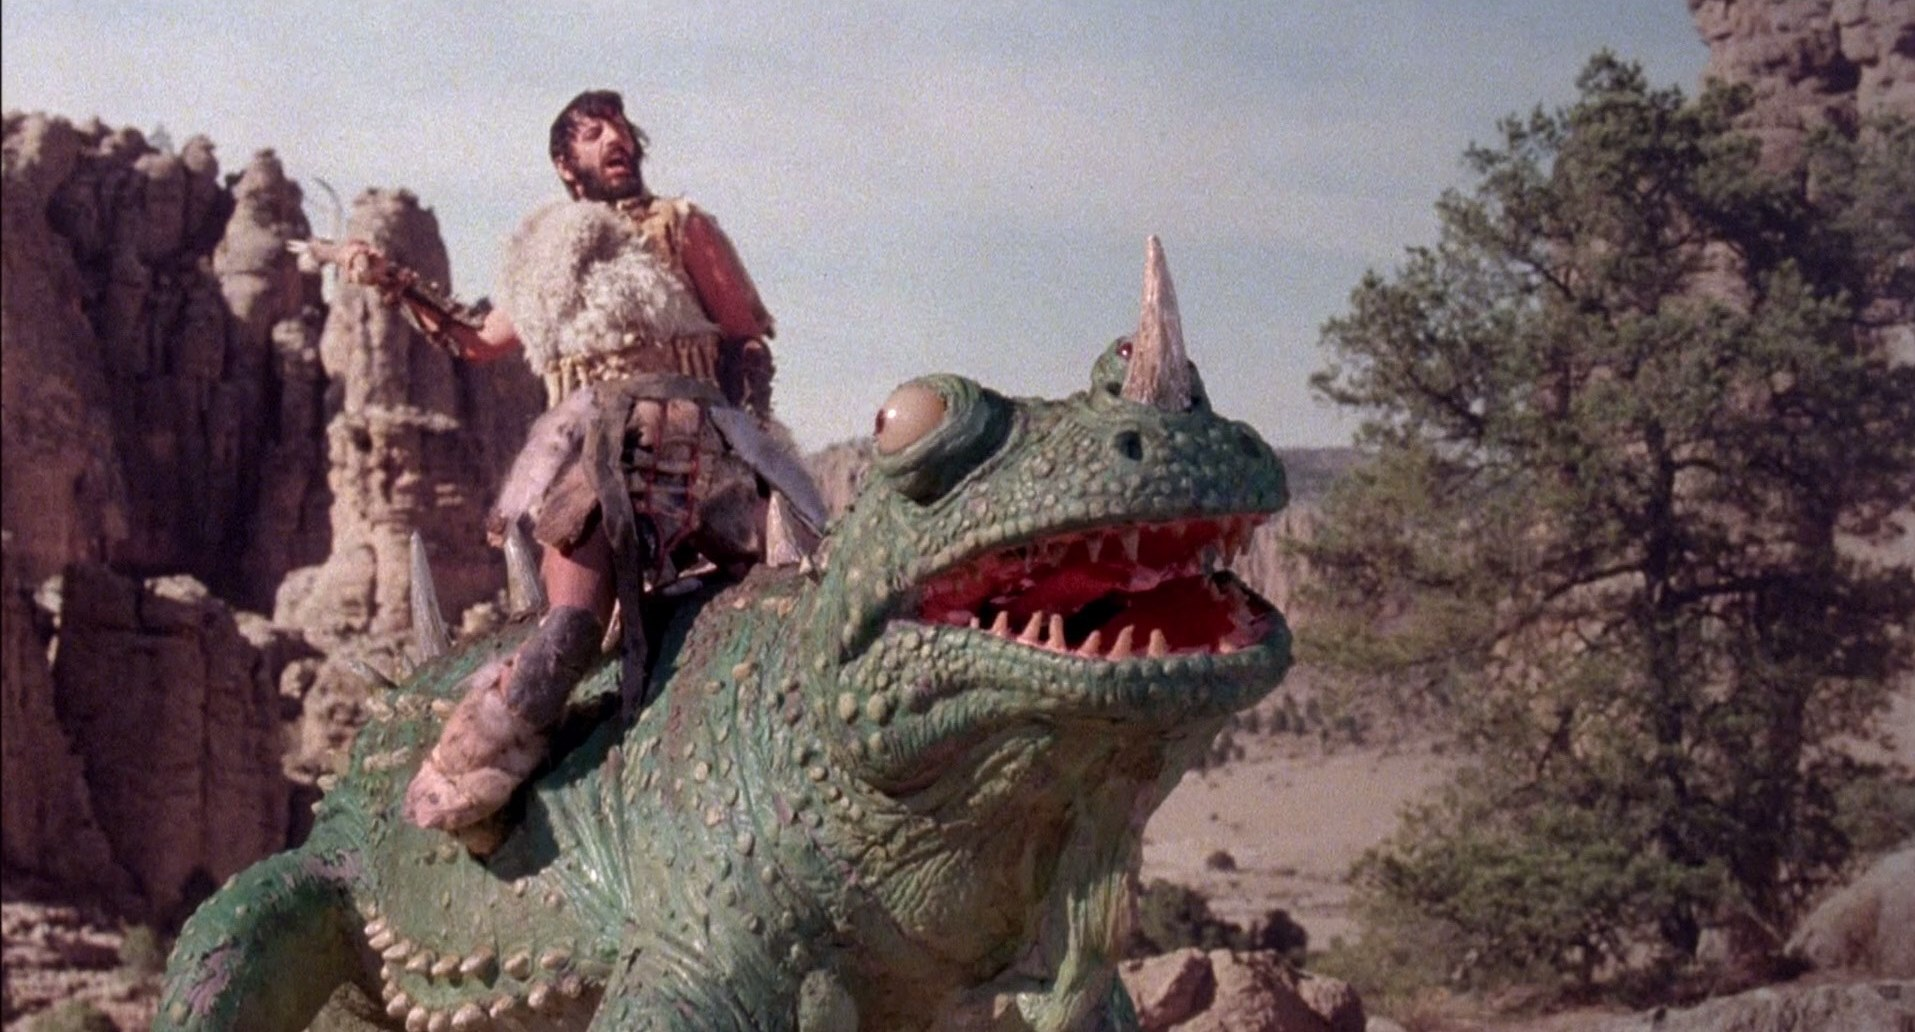 Ringo Starr on the back of a dinosaur in Caveman (1981)